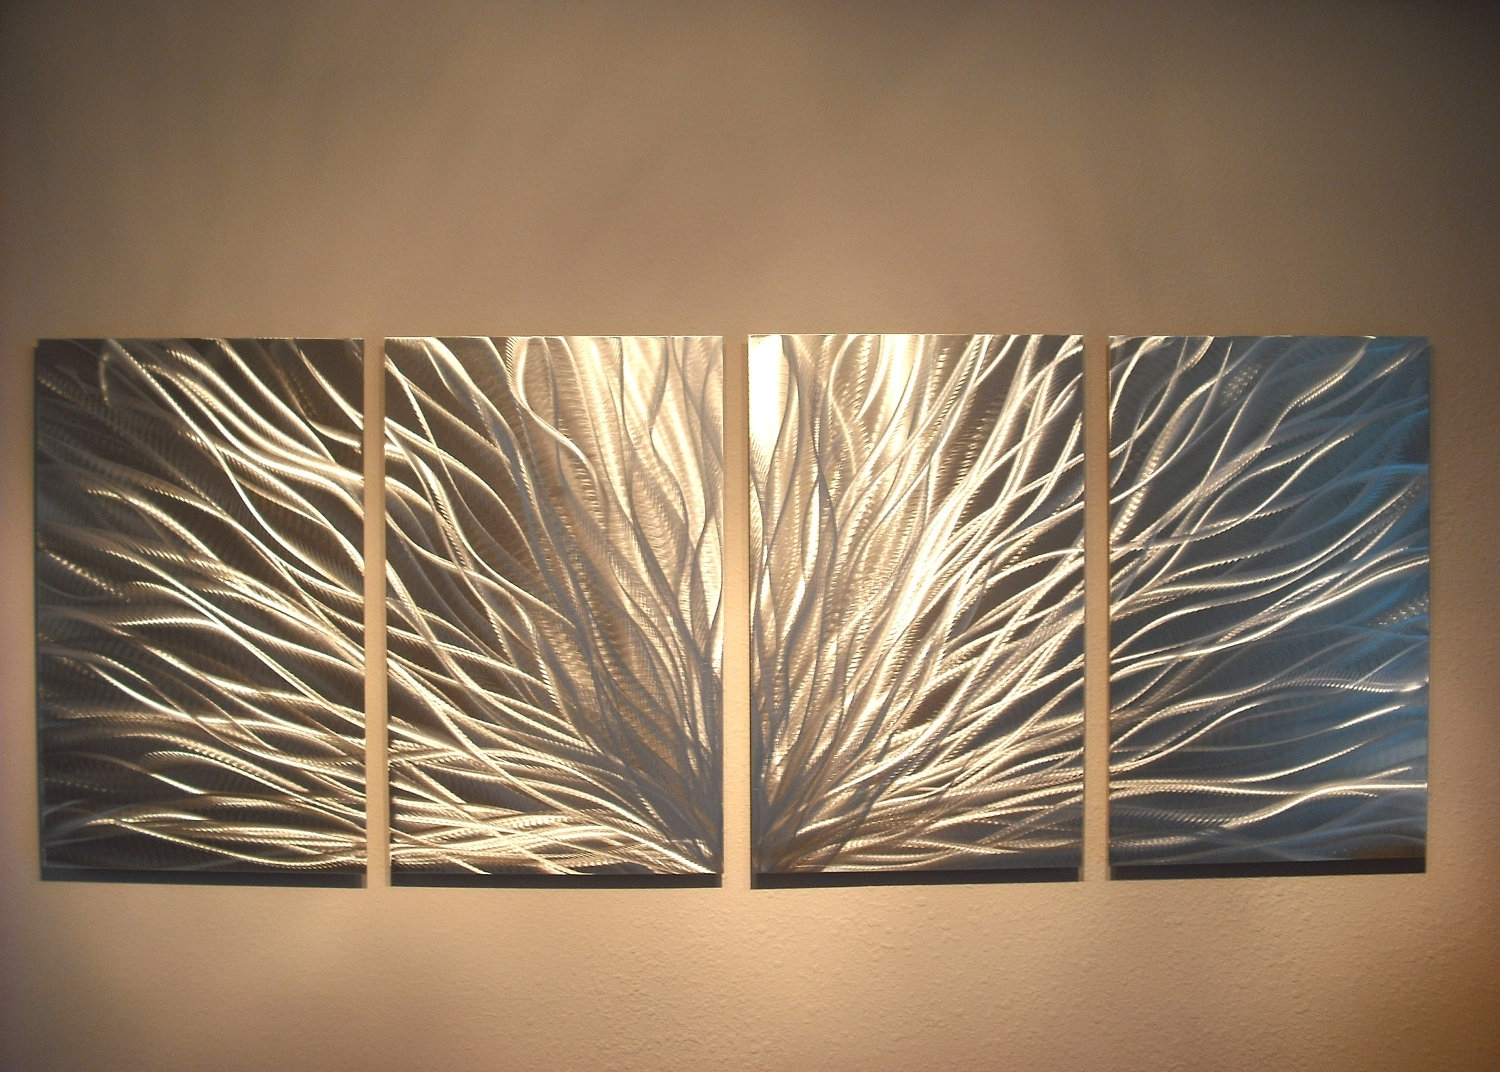 Radiance – Abstract Metal Wall Art Contemporary Modern Decor Regarding Newest Abstract Metal Wall Art Painting (View 10 of 20)